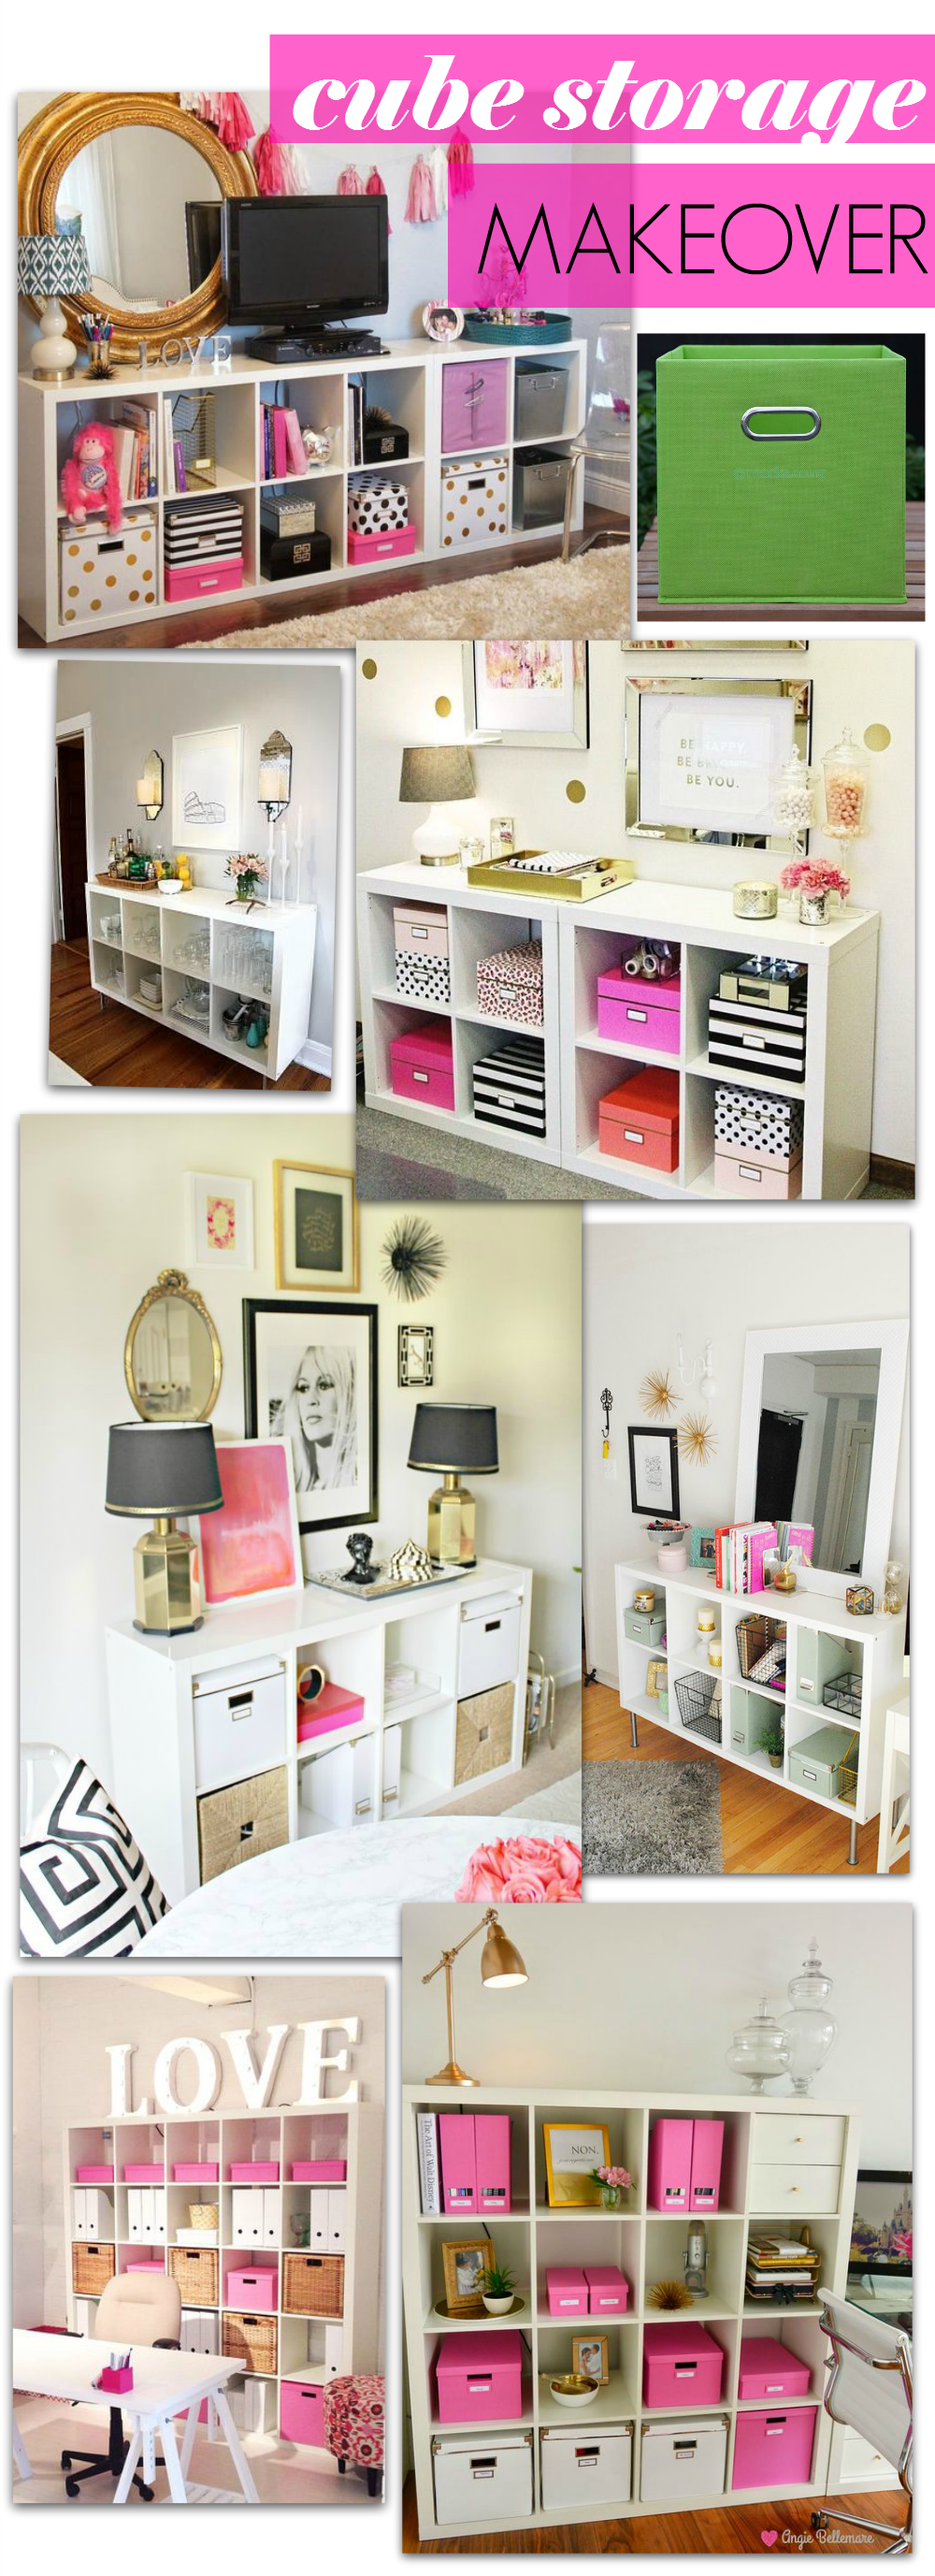 DIY Cube Storage Makeover Inspo DIY Cube